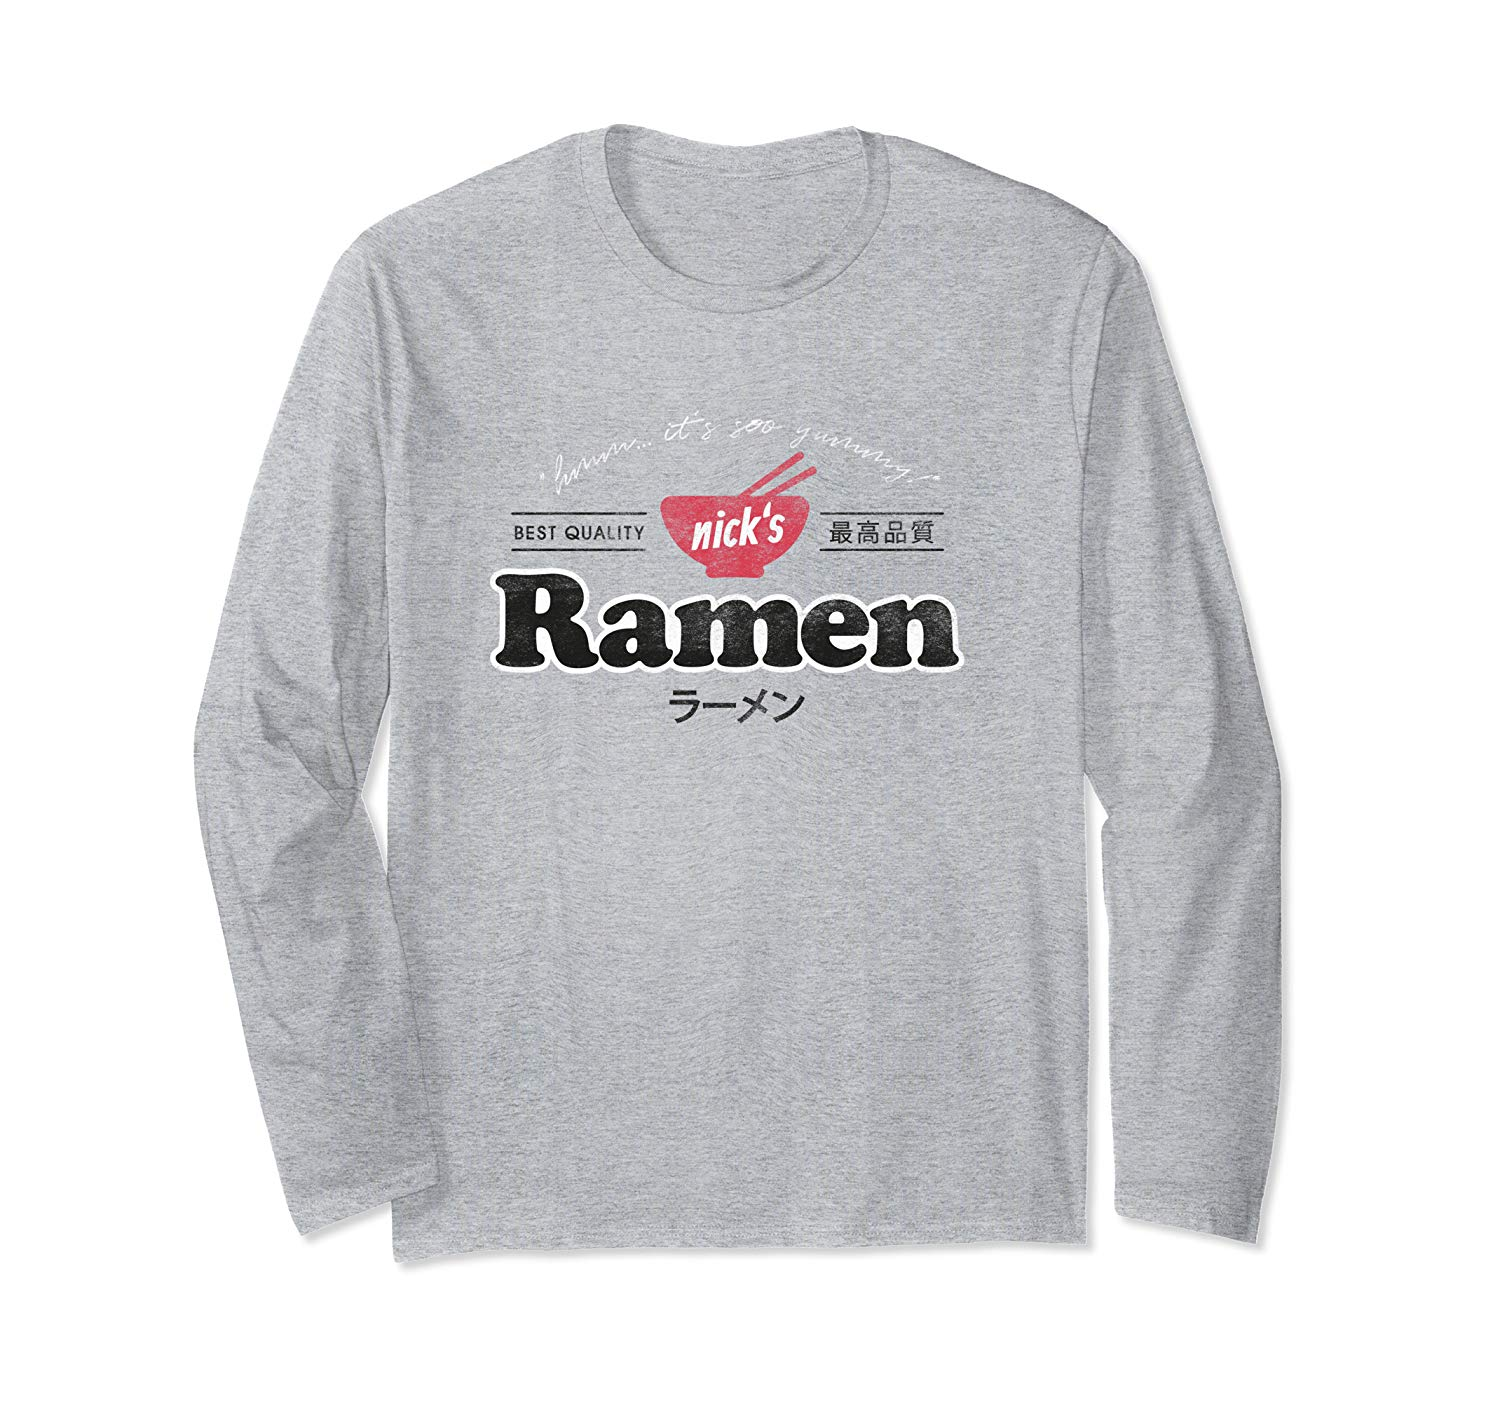 T-Shirt: Nicks Ramen Signature Japan Nudel Retro Design Langarmshirt